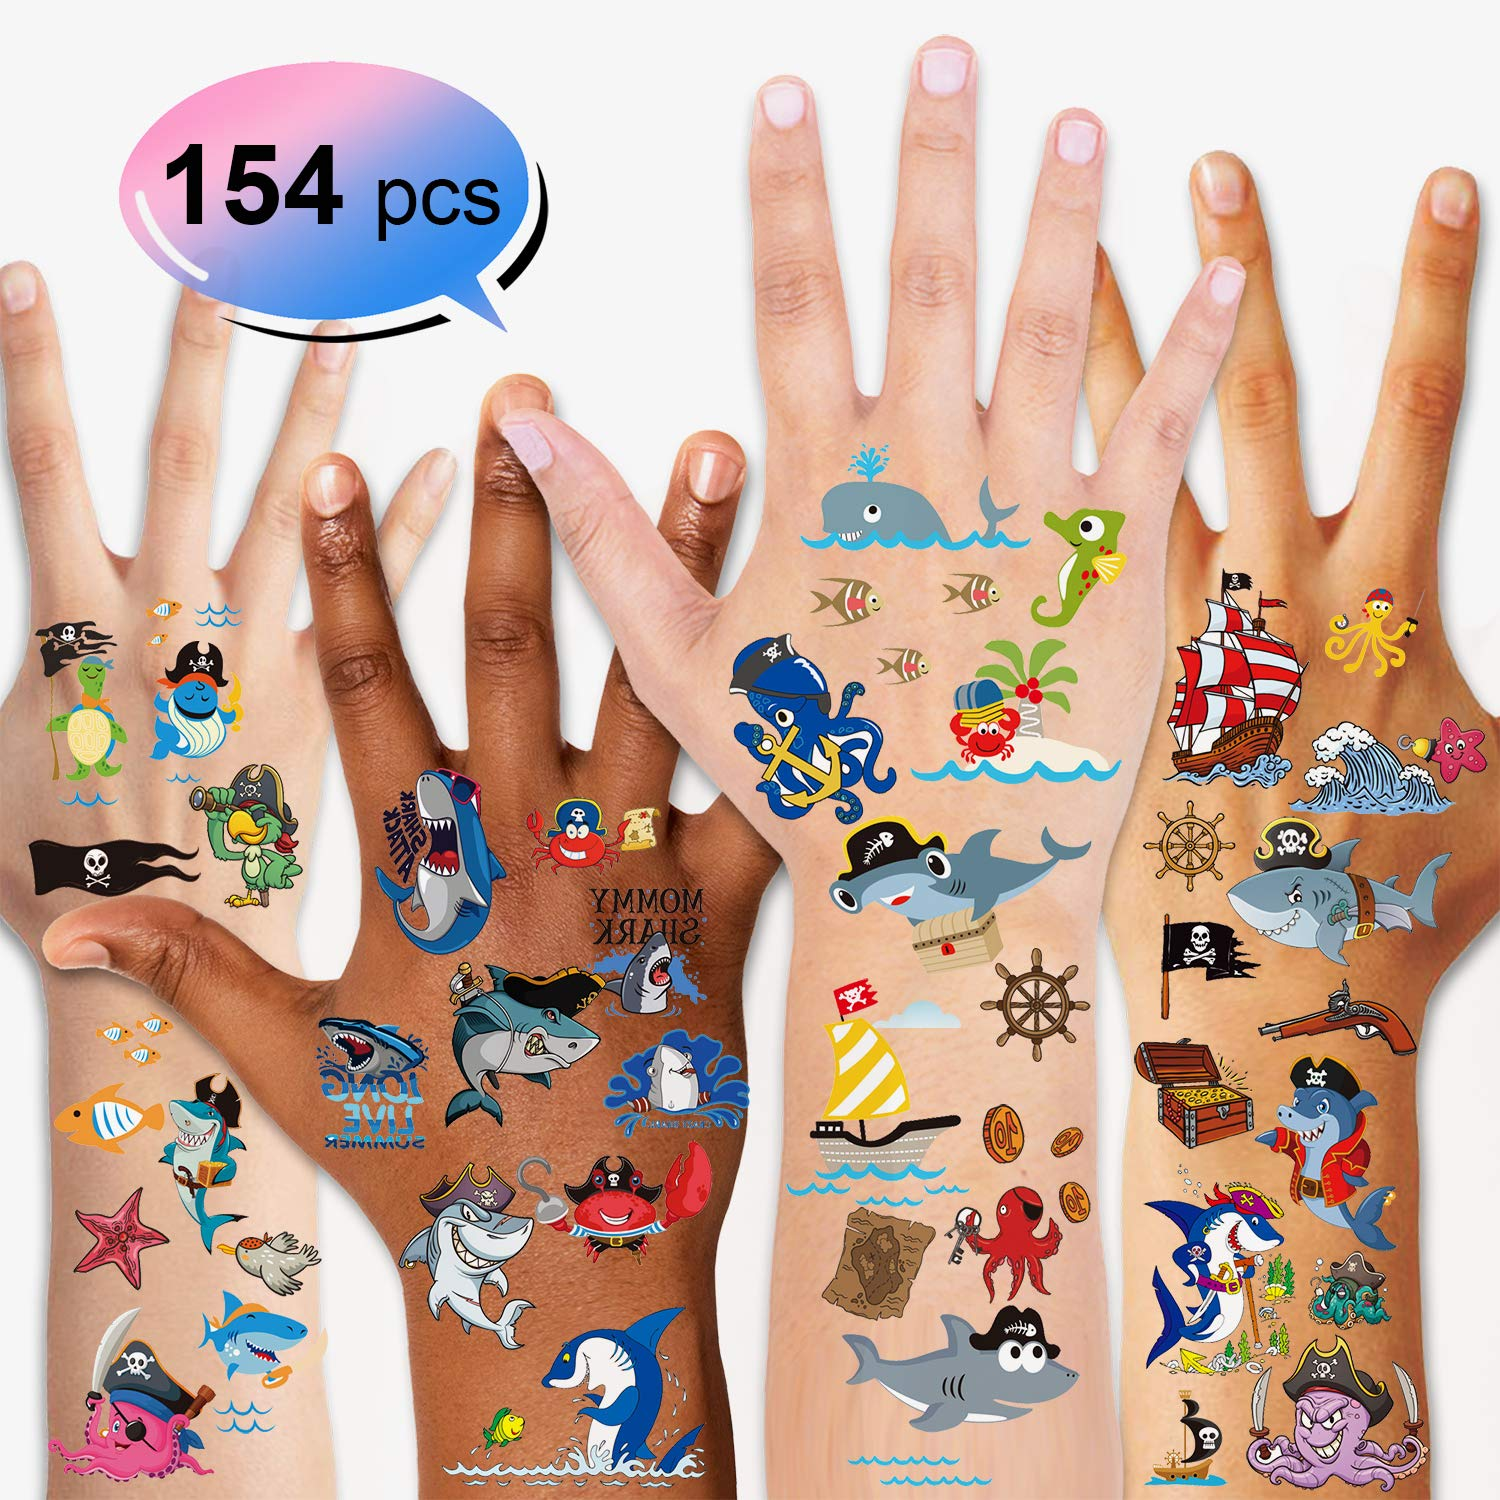 Konsait 154pcs Shark Temporary Tattoos Shark Tattoo Body Stickers Costume Accessories for Ocean Sea Shark Themed Baby Shower Birthday Party Favor Supplies Decor for Boy Girls Kids Party Bag Filler